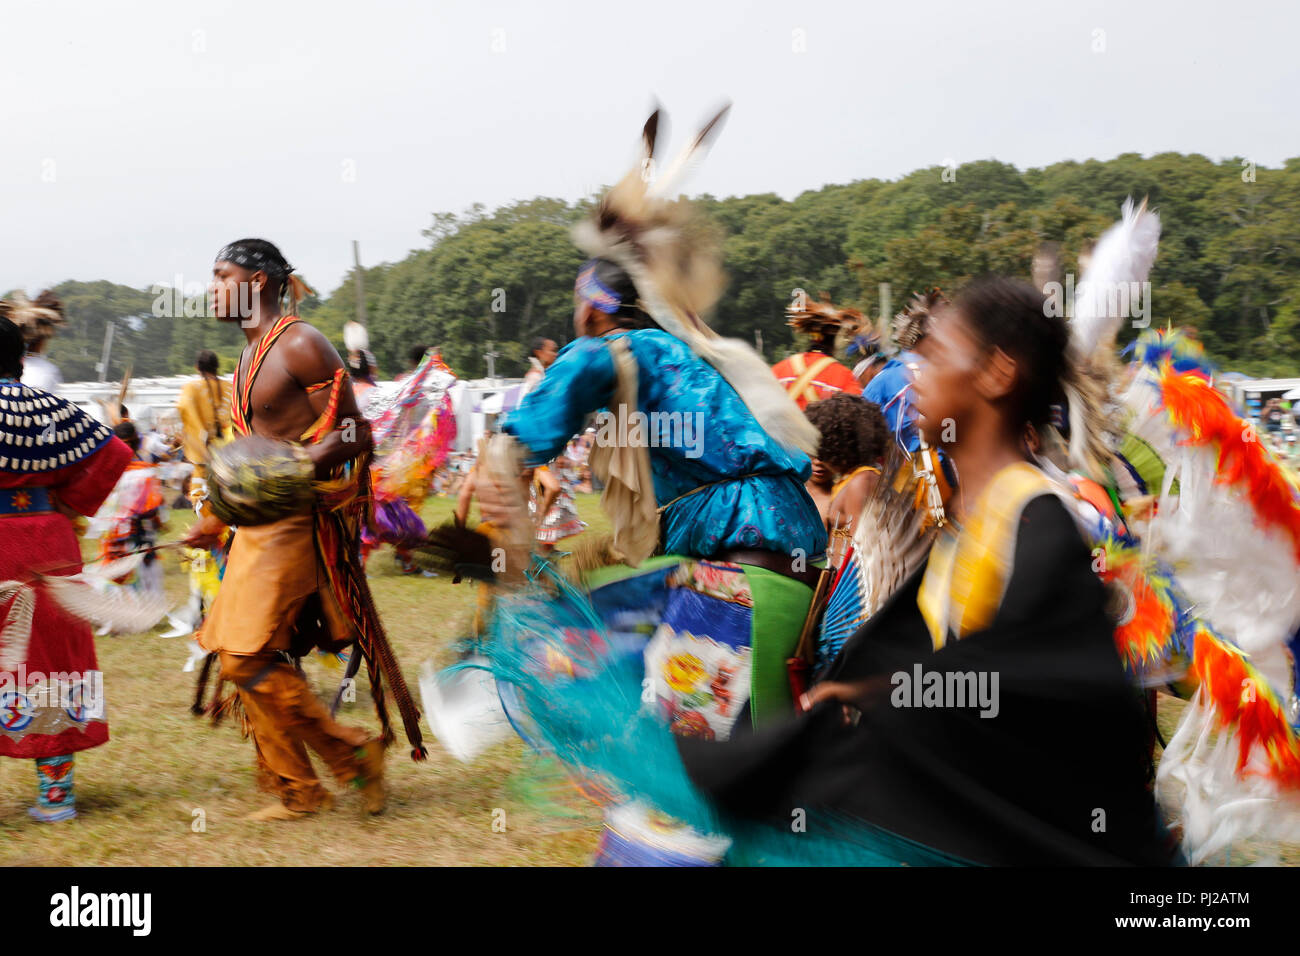 Southhampton, United States of America. 03rd, Sep 2018. Traditional dance during the celebration of the 72nd annual Shinnecock Indian Powwow over the Labour Day weekend in Southampton Long Island New York in Southhampton, United States of America, 03 September 2018. (PHOTO) Alejandro Sala/Alamy News Stock Photo